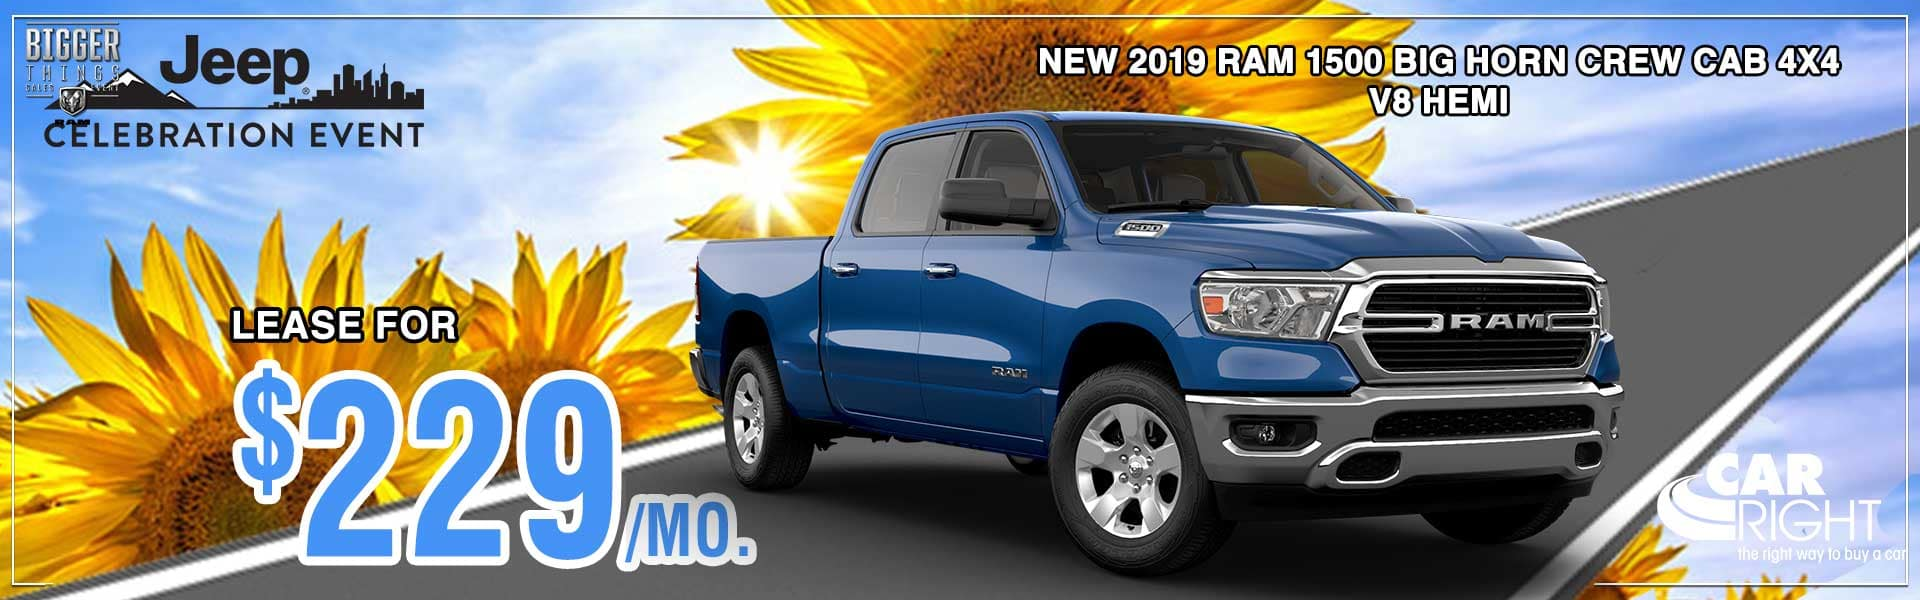 CarRight Chrysler Jeep Dodge Ram Fuso. Moon Township, PA. New, Used, parts, accessories, service. The right way to buy a car. 2019 Ram 1500 Big Horn Crew Cab 4x4